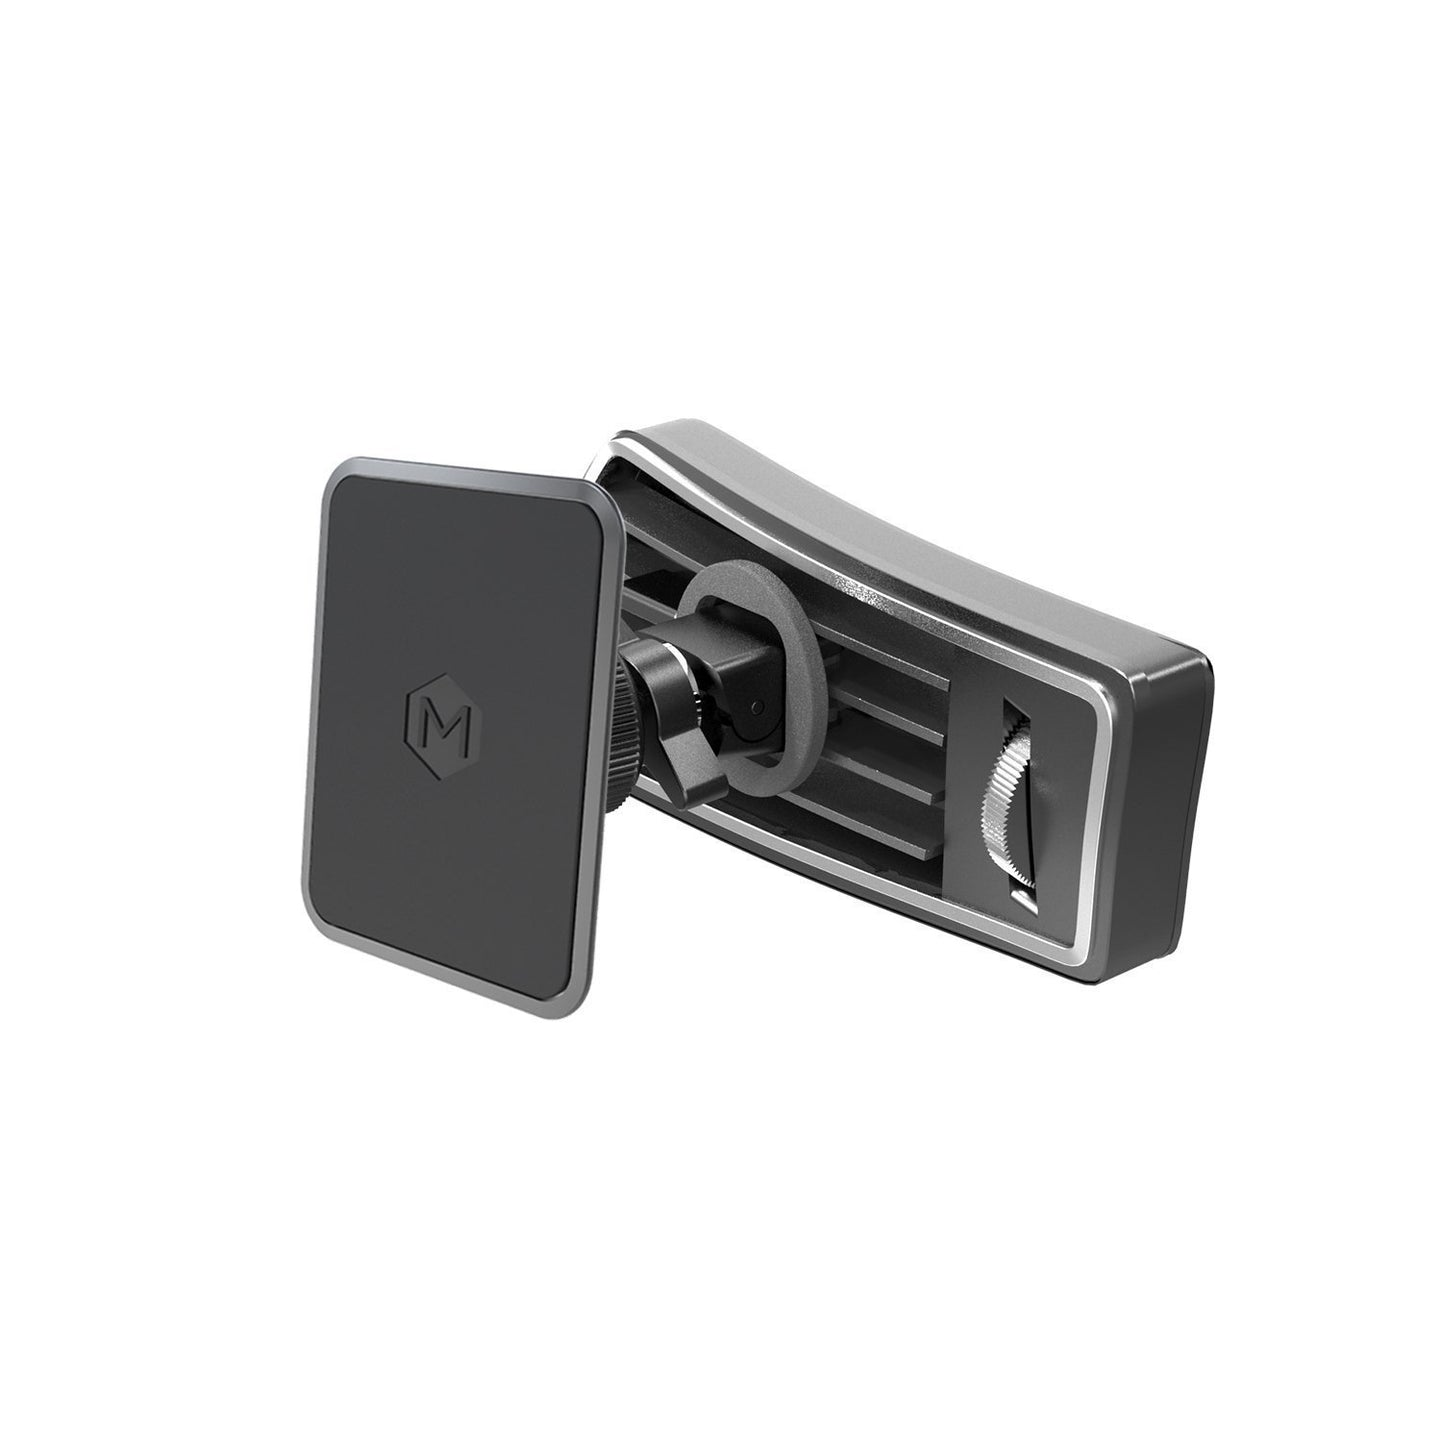 Magnetic Car Vent Mount Holder - With 6 Powerful Magnets